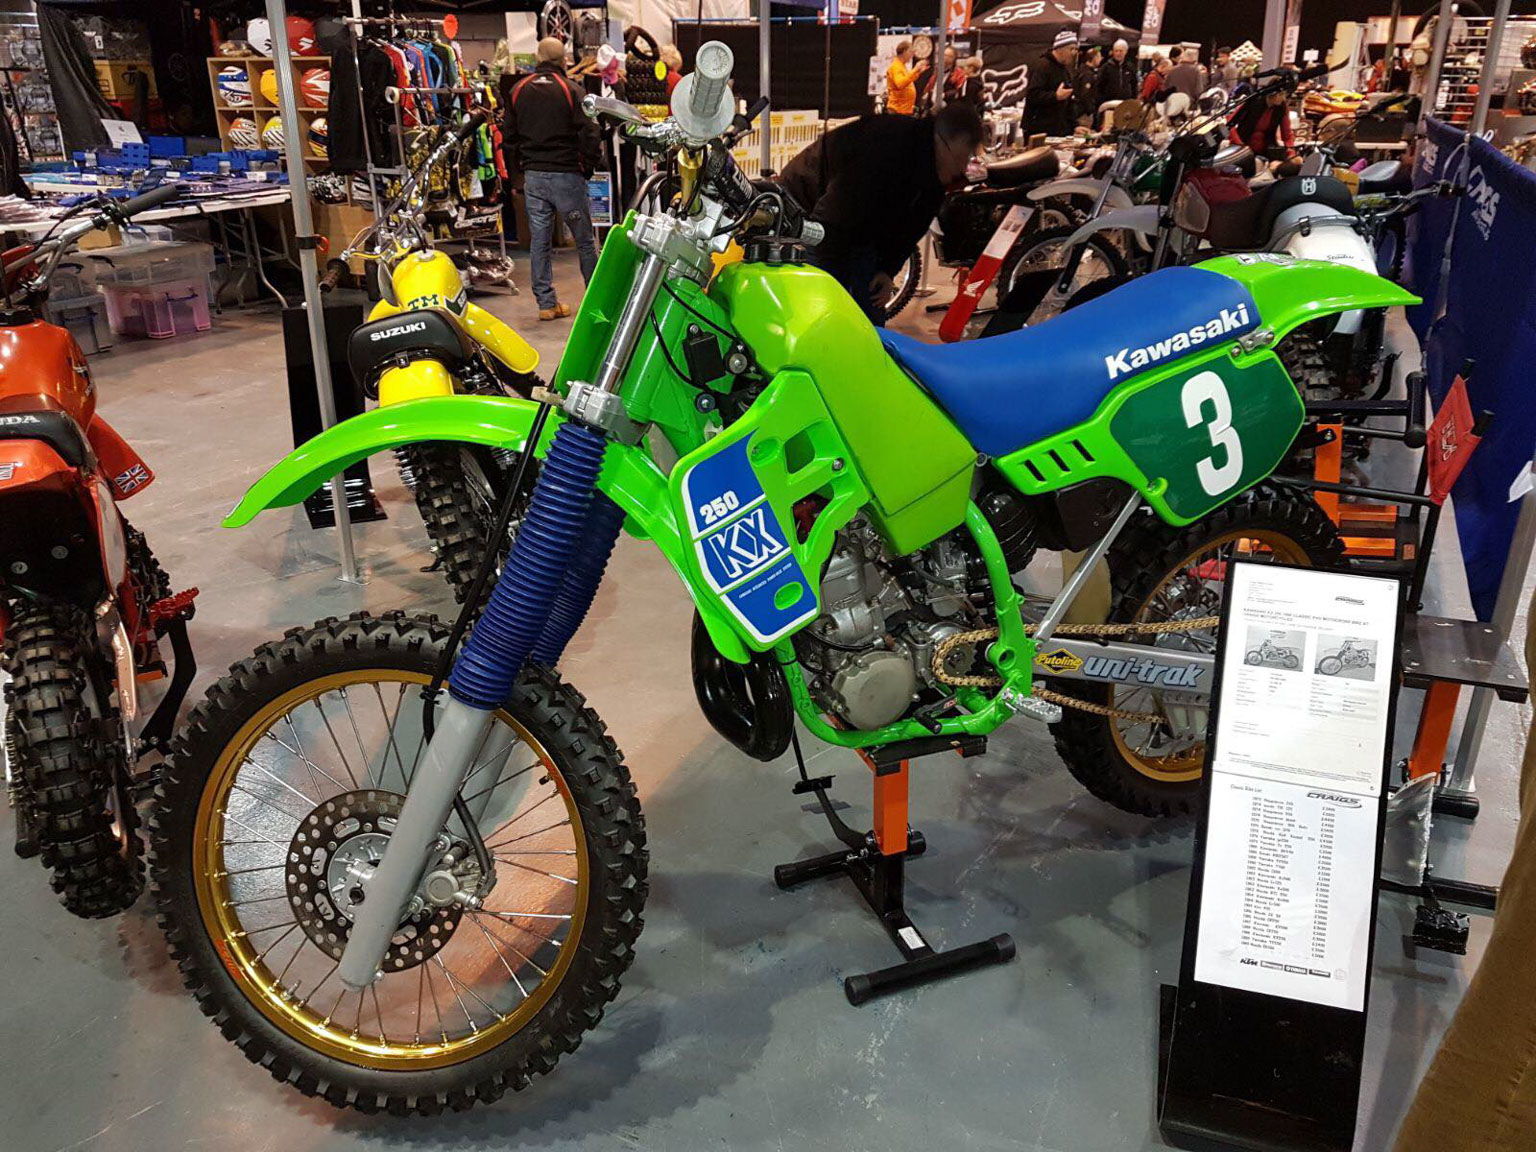 The immaculate KX was one of the stars!